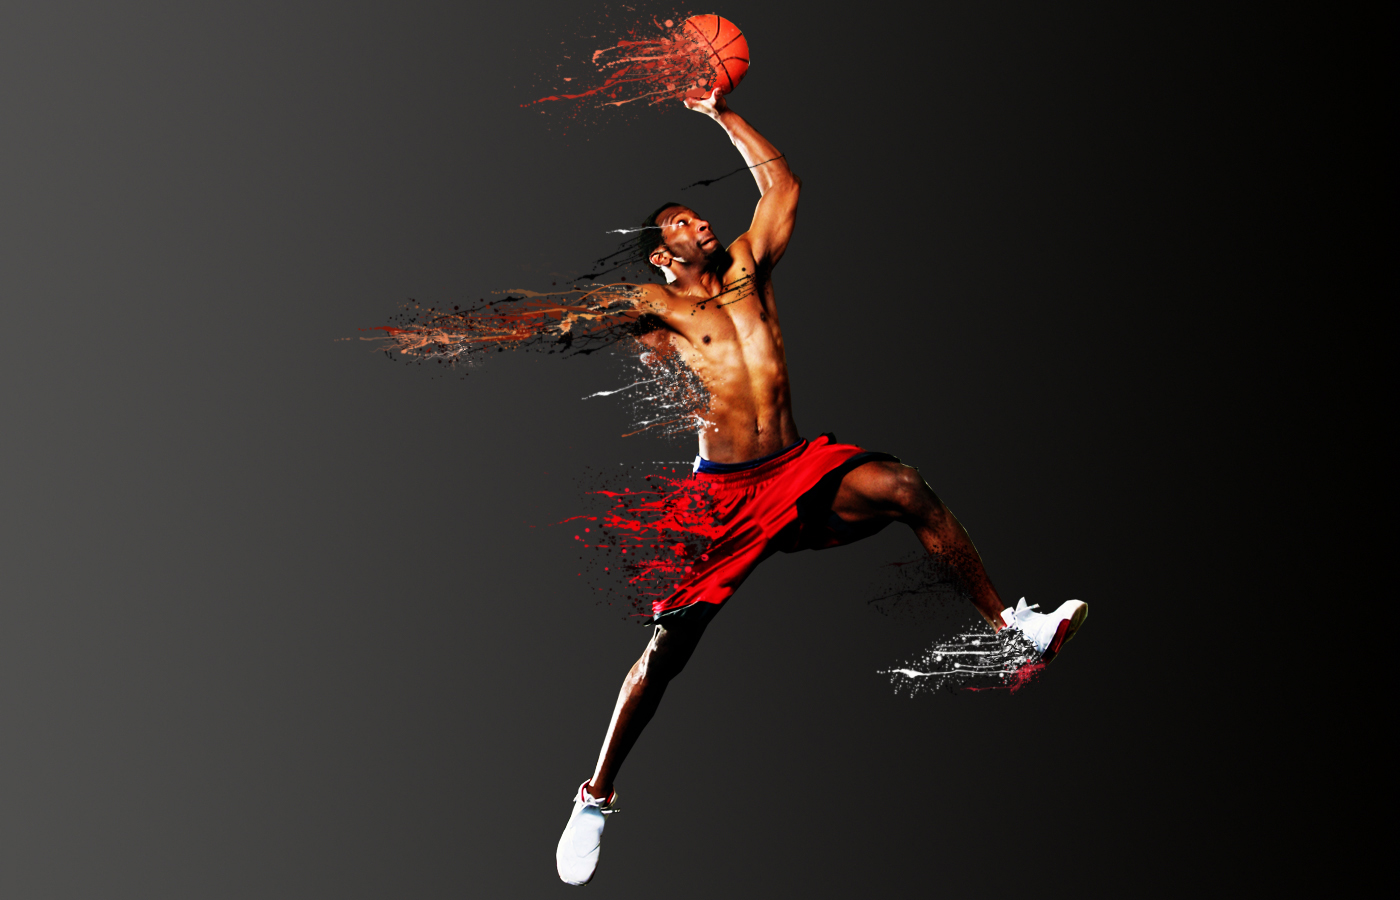 Wallpapers Basketball - HD Desktop Wallpapers